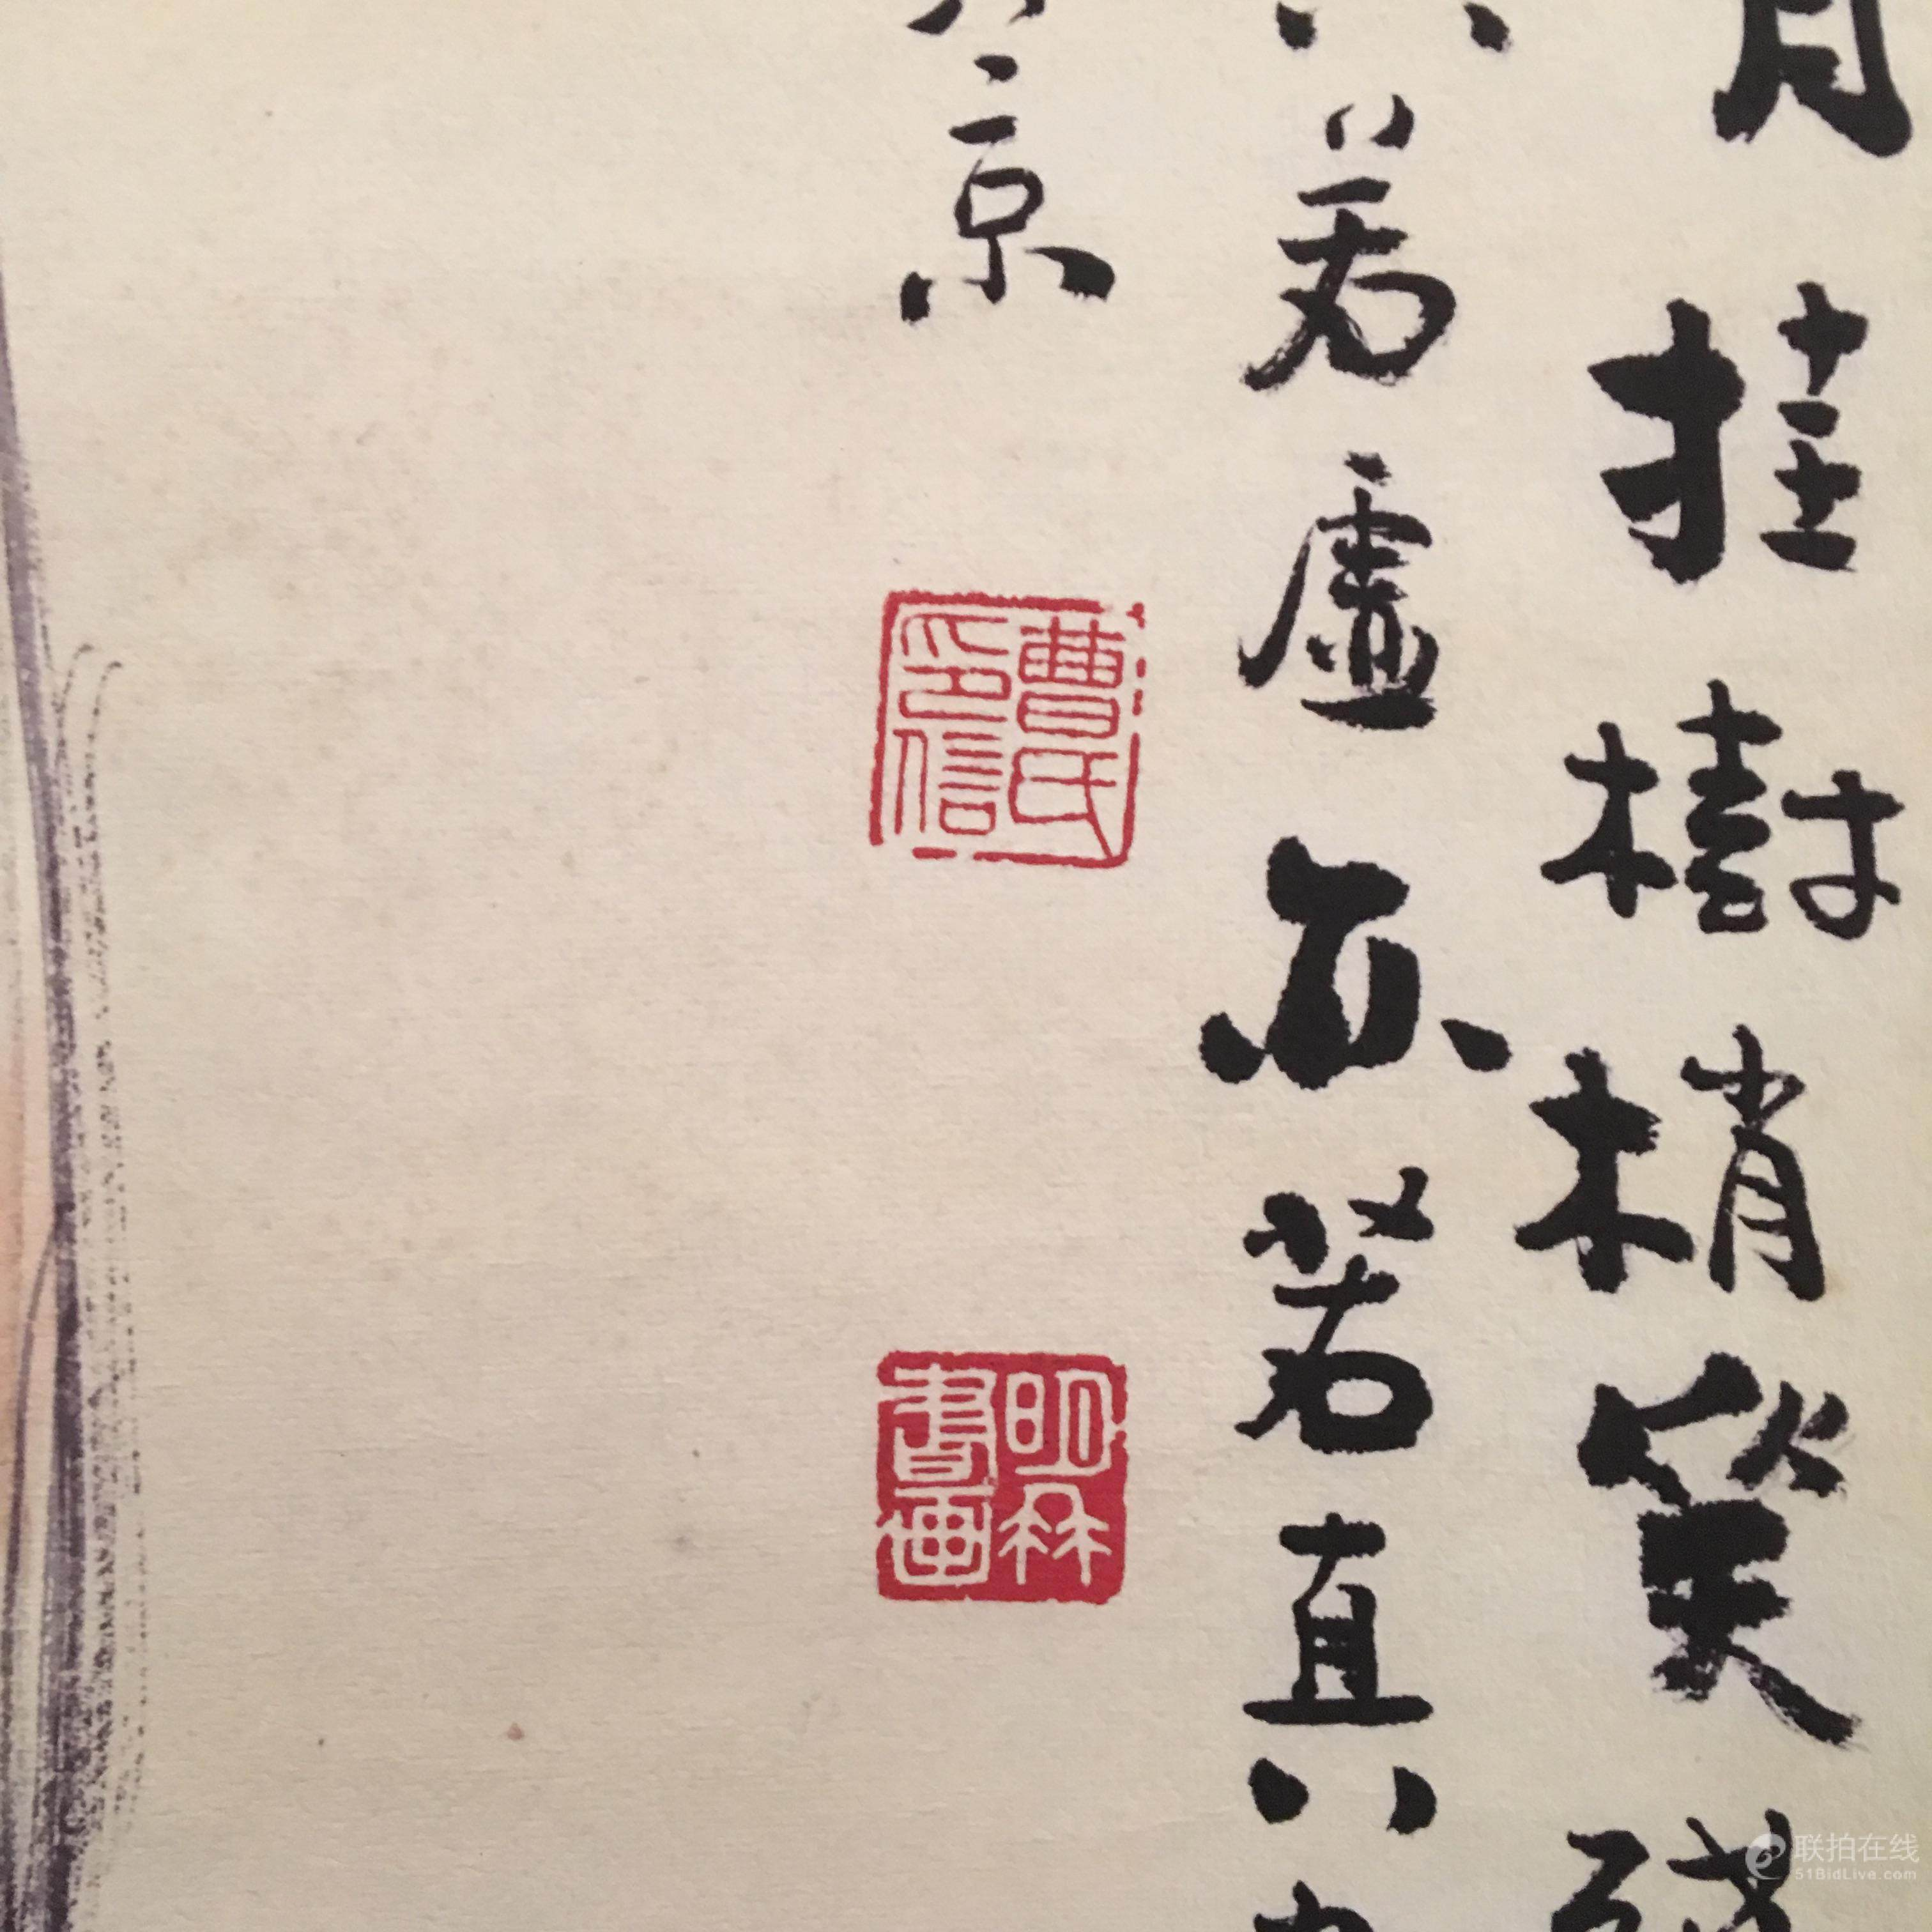 51BidLive-[Chinese Hanging Scroll Painting, Ming Ran Signature]